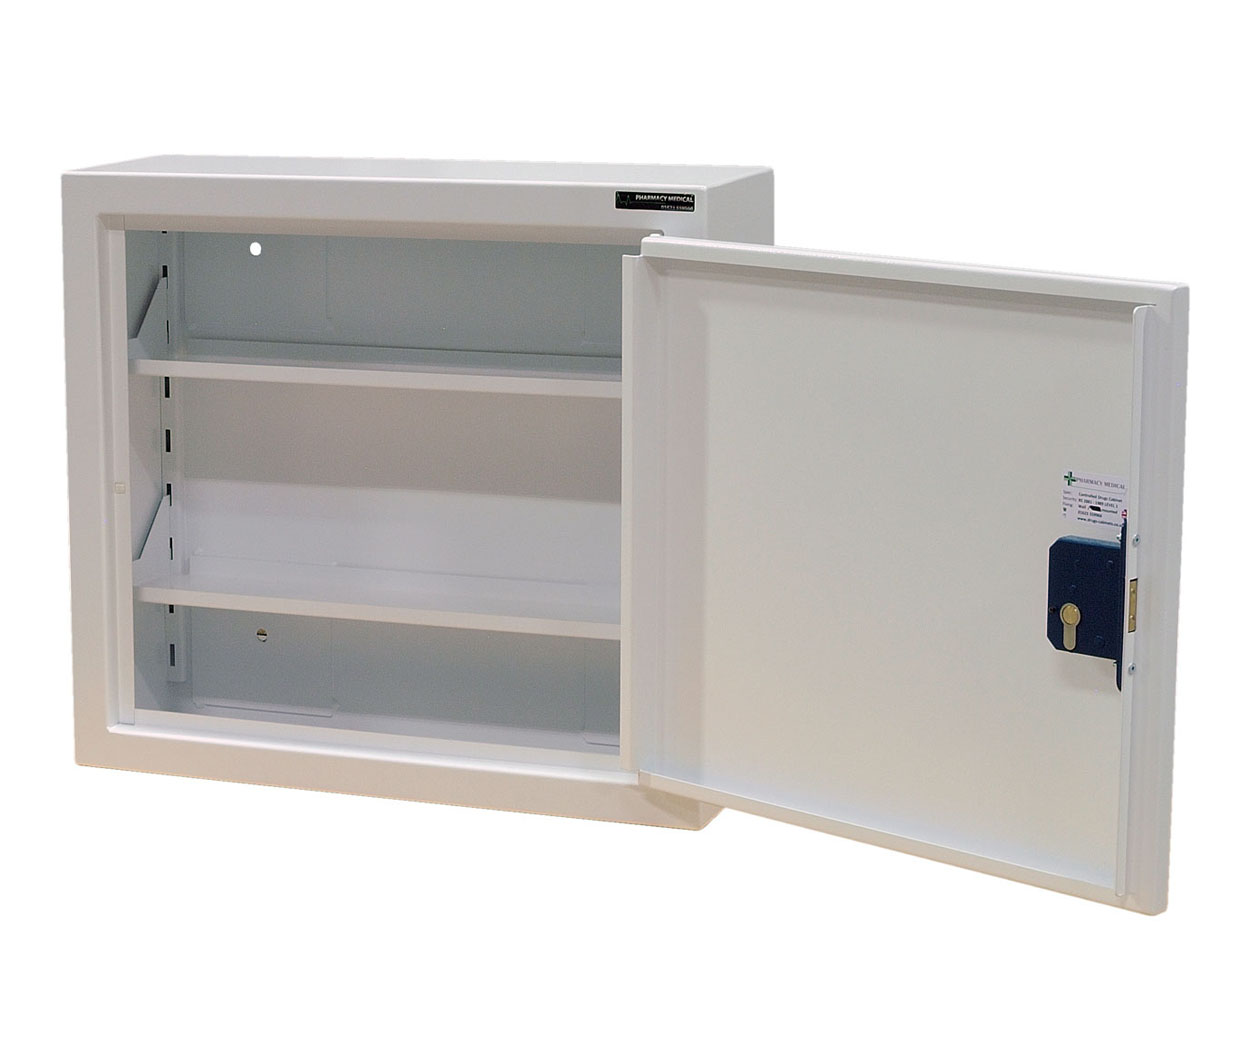 HEC Controlled Drug Cabinet 480mm x 560mm x 160mm - 2 shelf